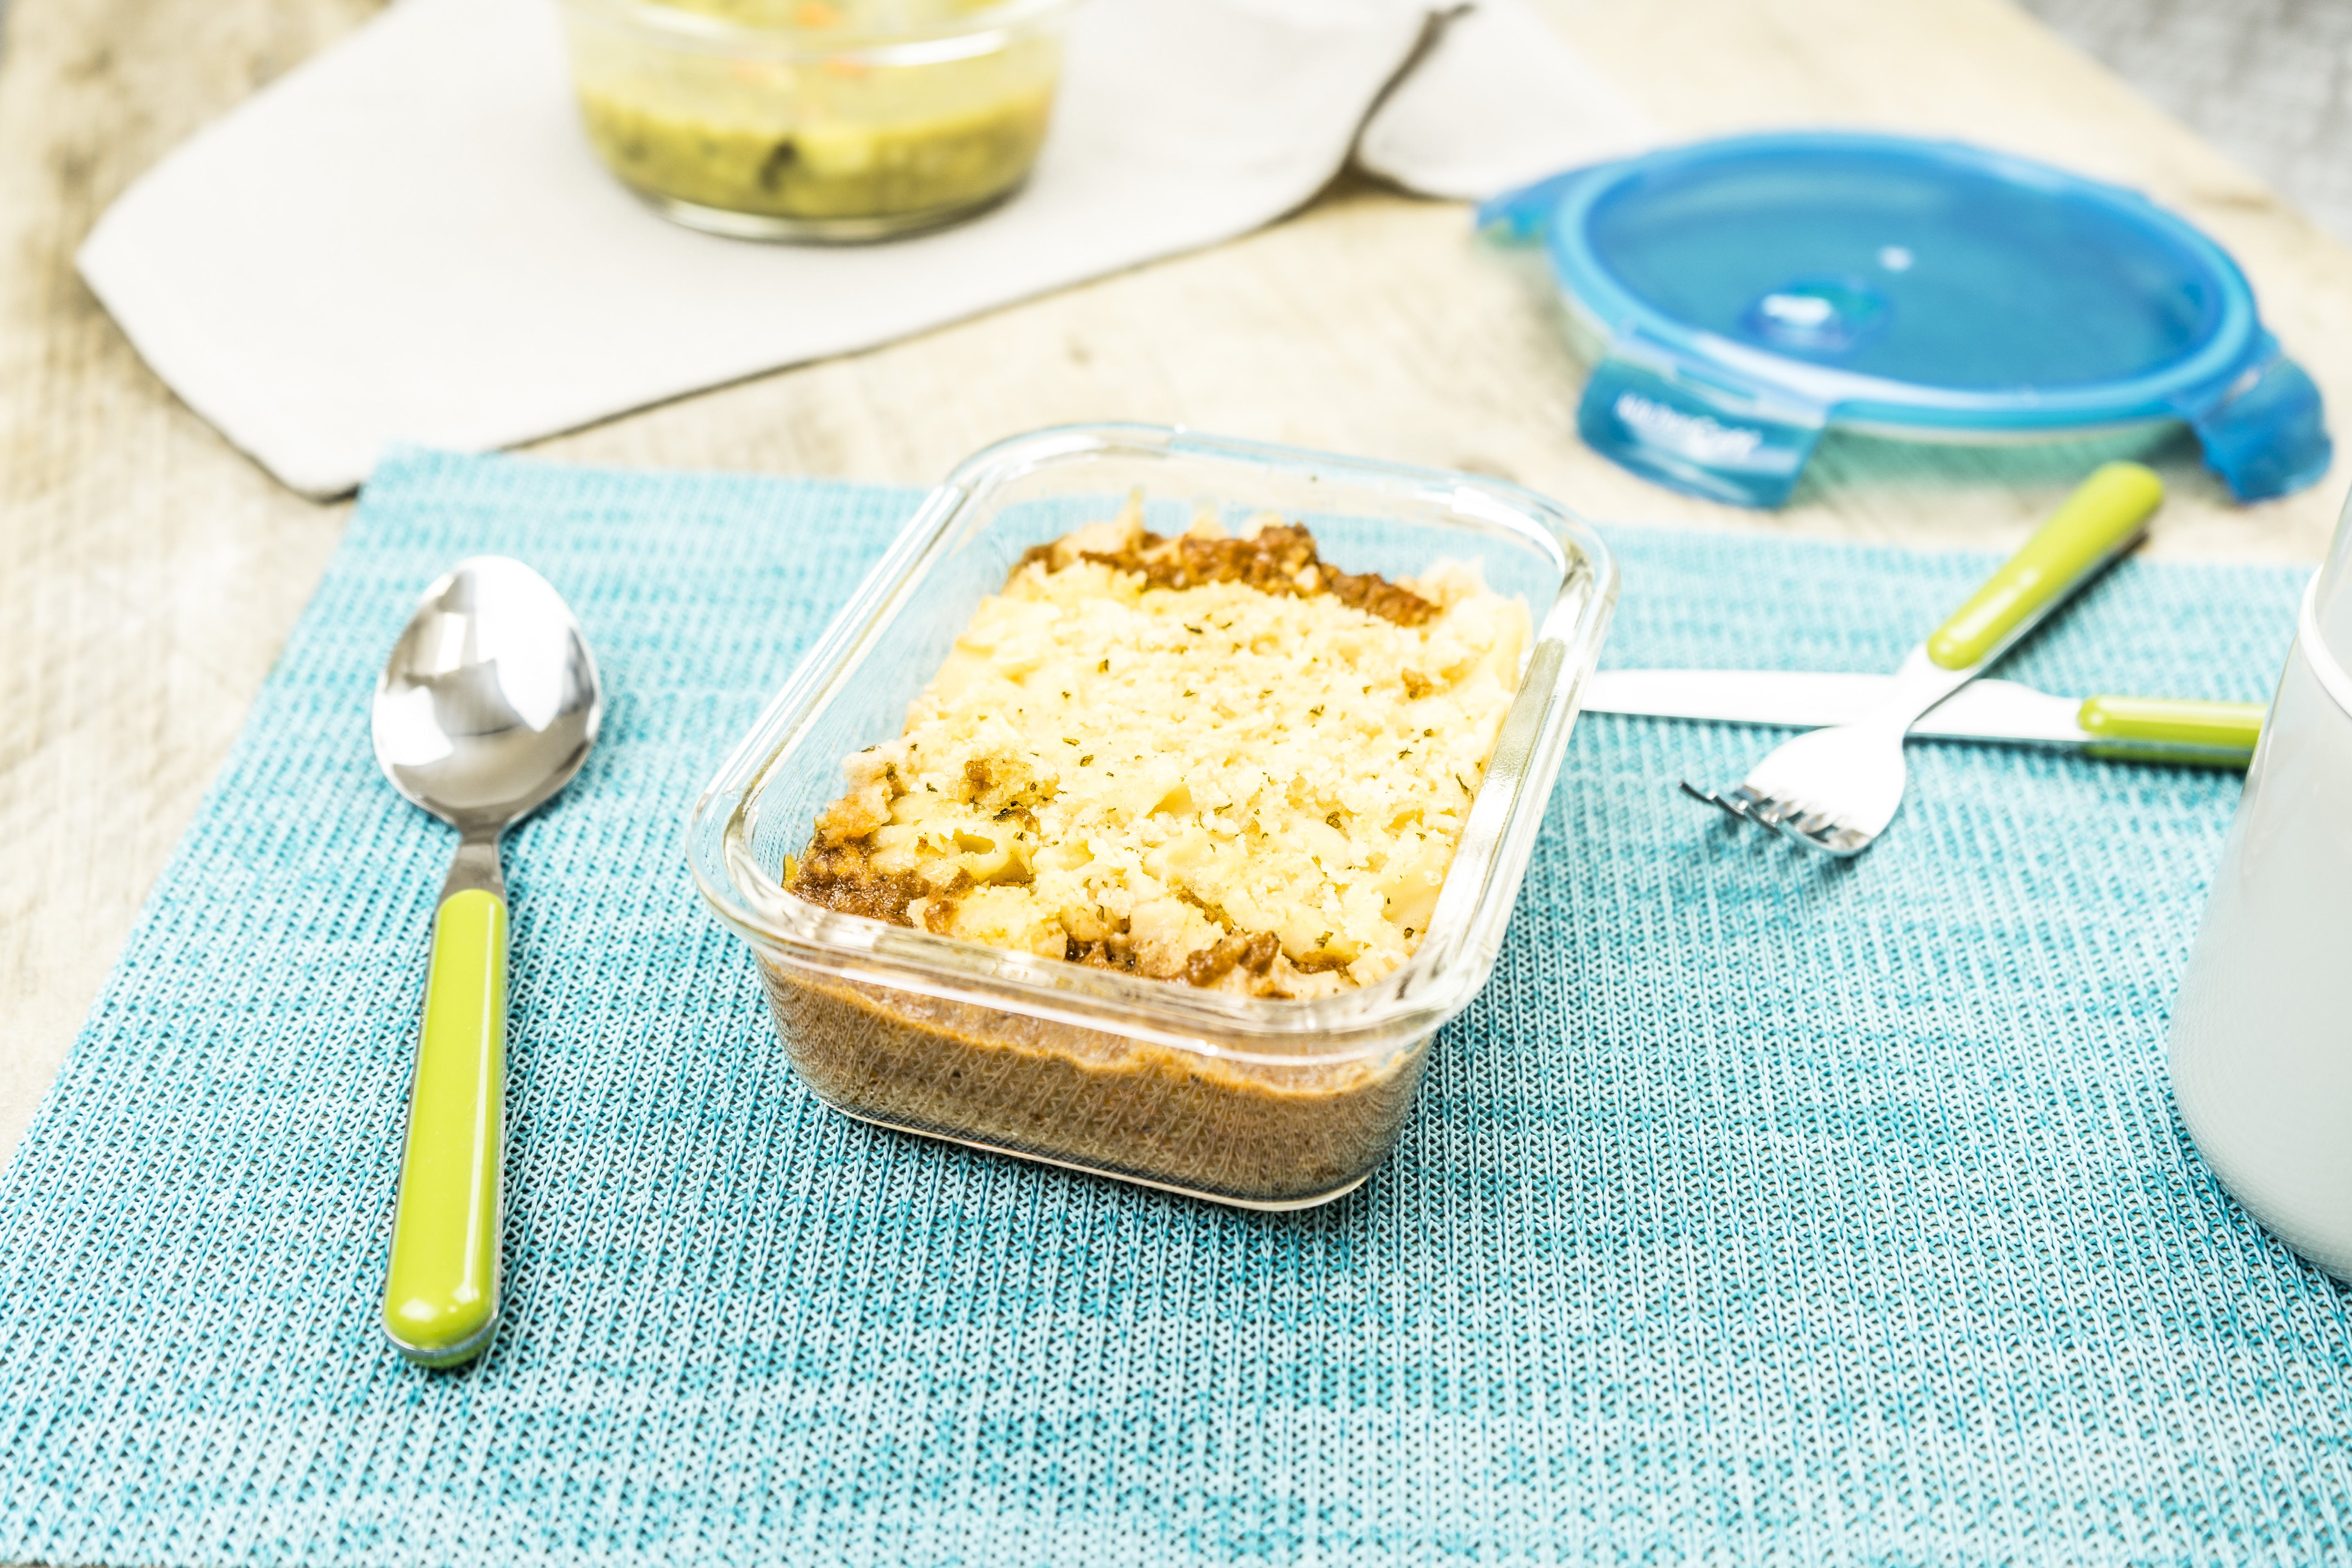 Shepherd's Pie with Parmesan and Herb Crumb